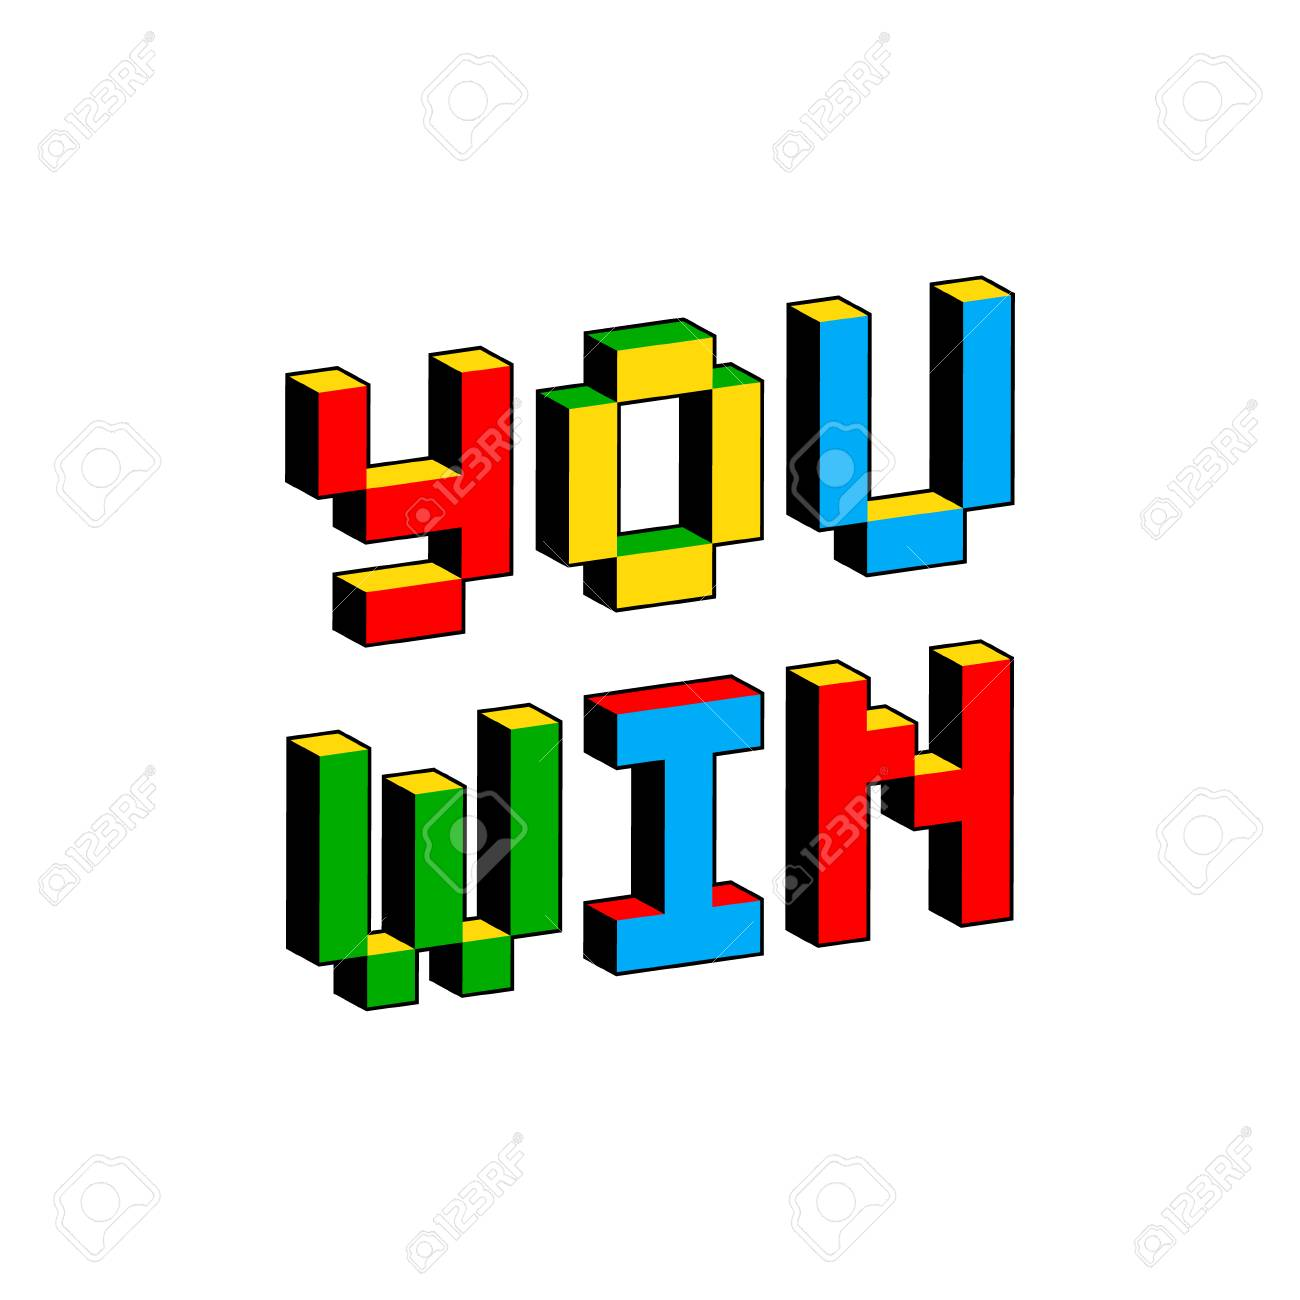 You win text in style of old 8-bit video games  Vibrant colorful